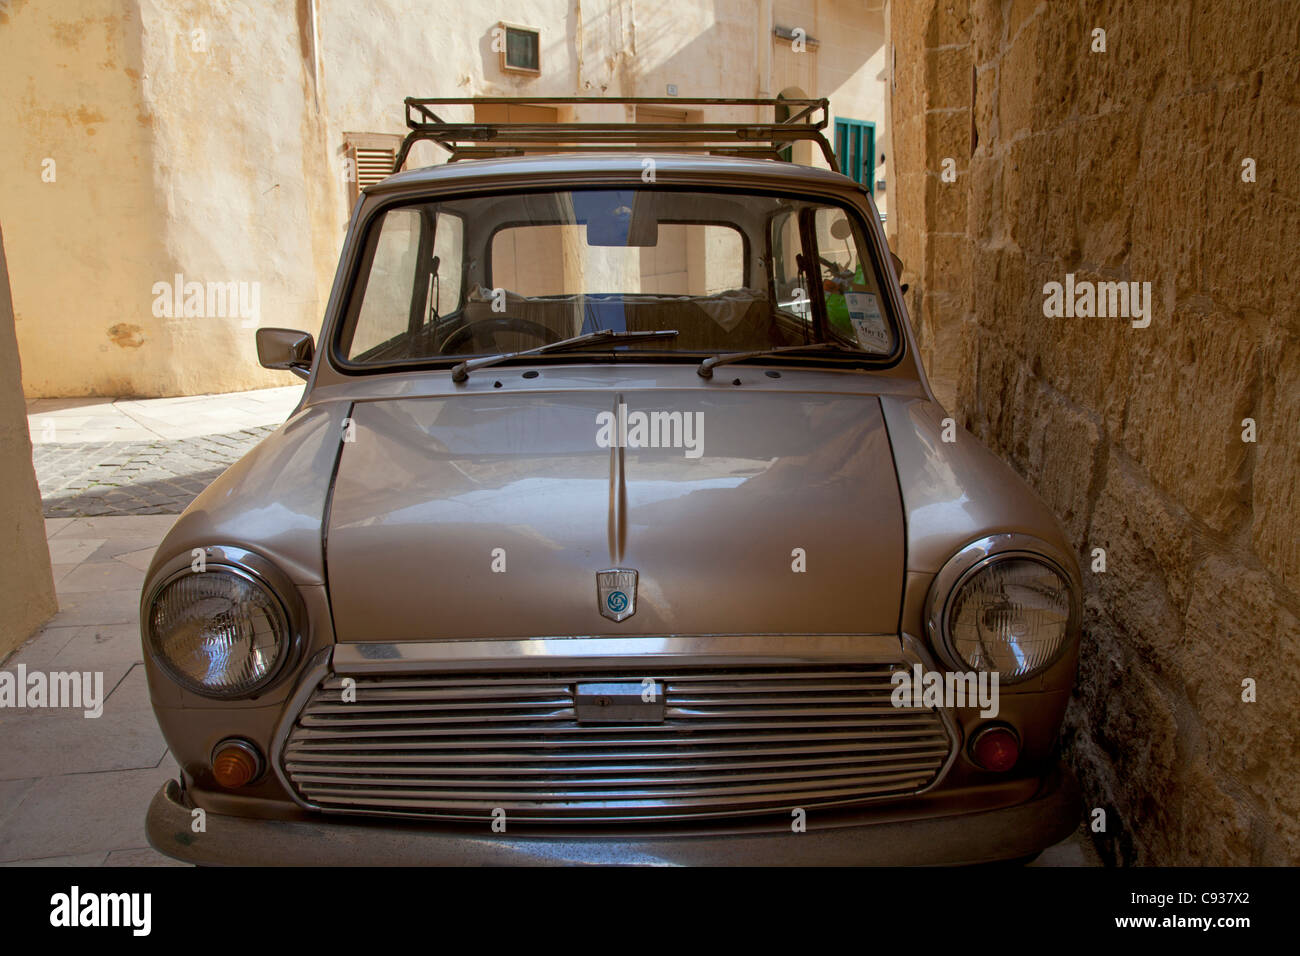 Gozo  Malta  Europe  A Mini minor Dating Back To The        s In One